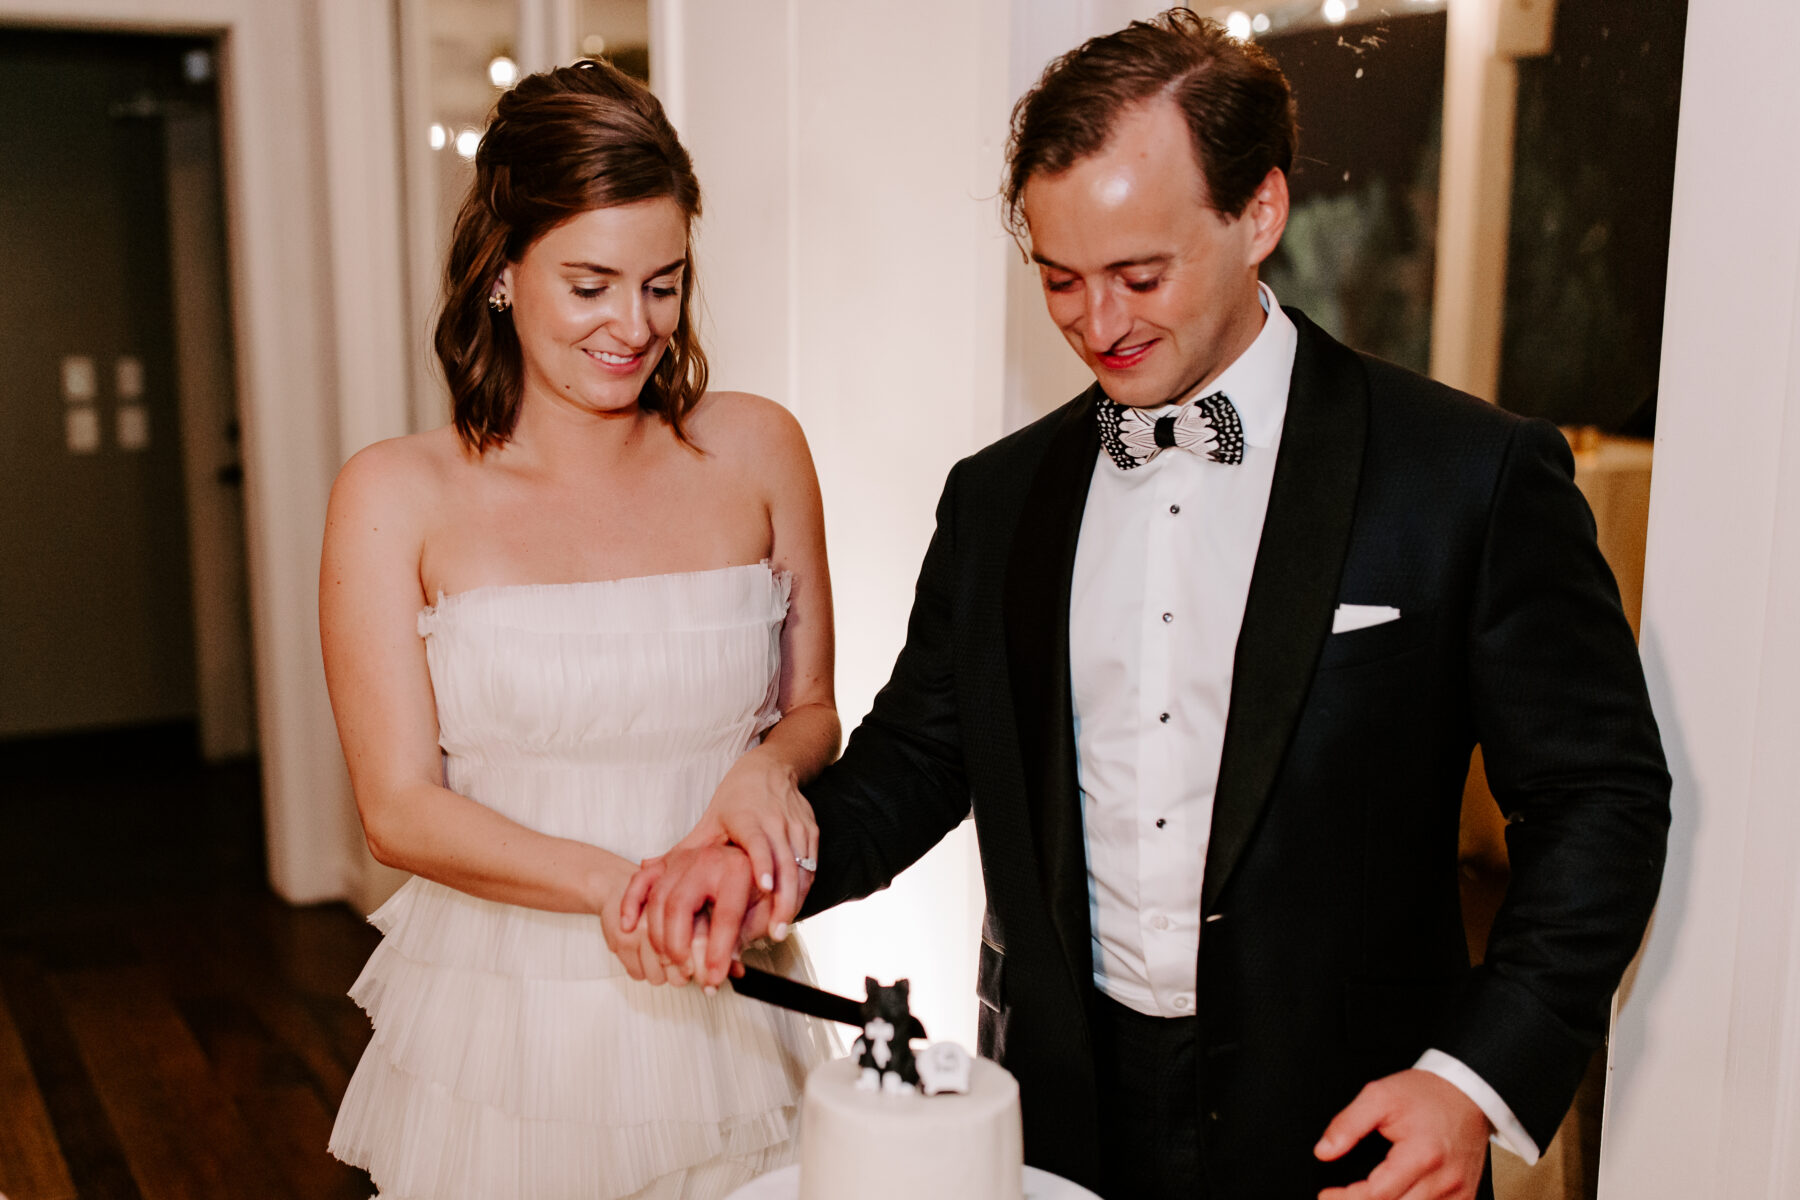 Bride and groom cutting black and white wedding cake | Nashville Bride Guide